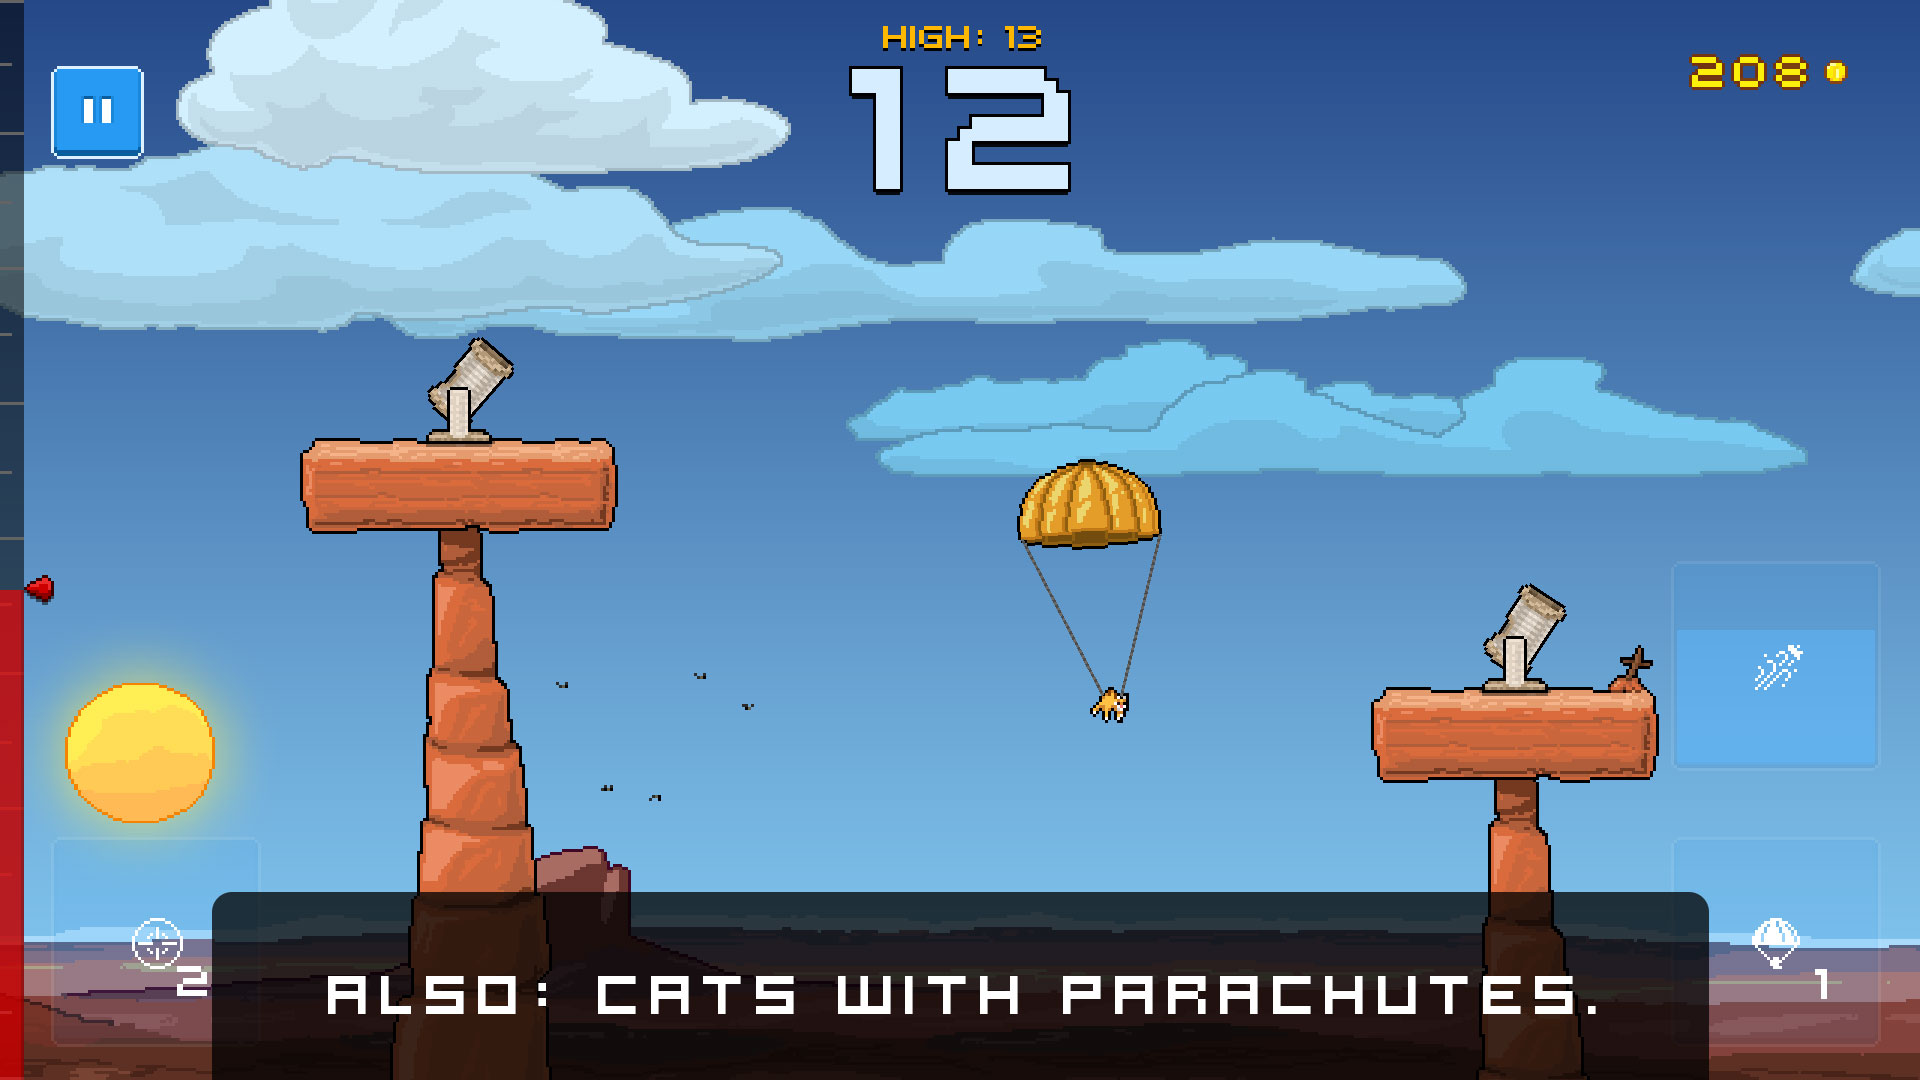 Human Cannonball - Cats with parachutes